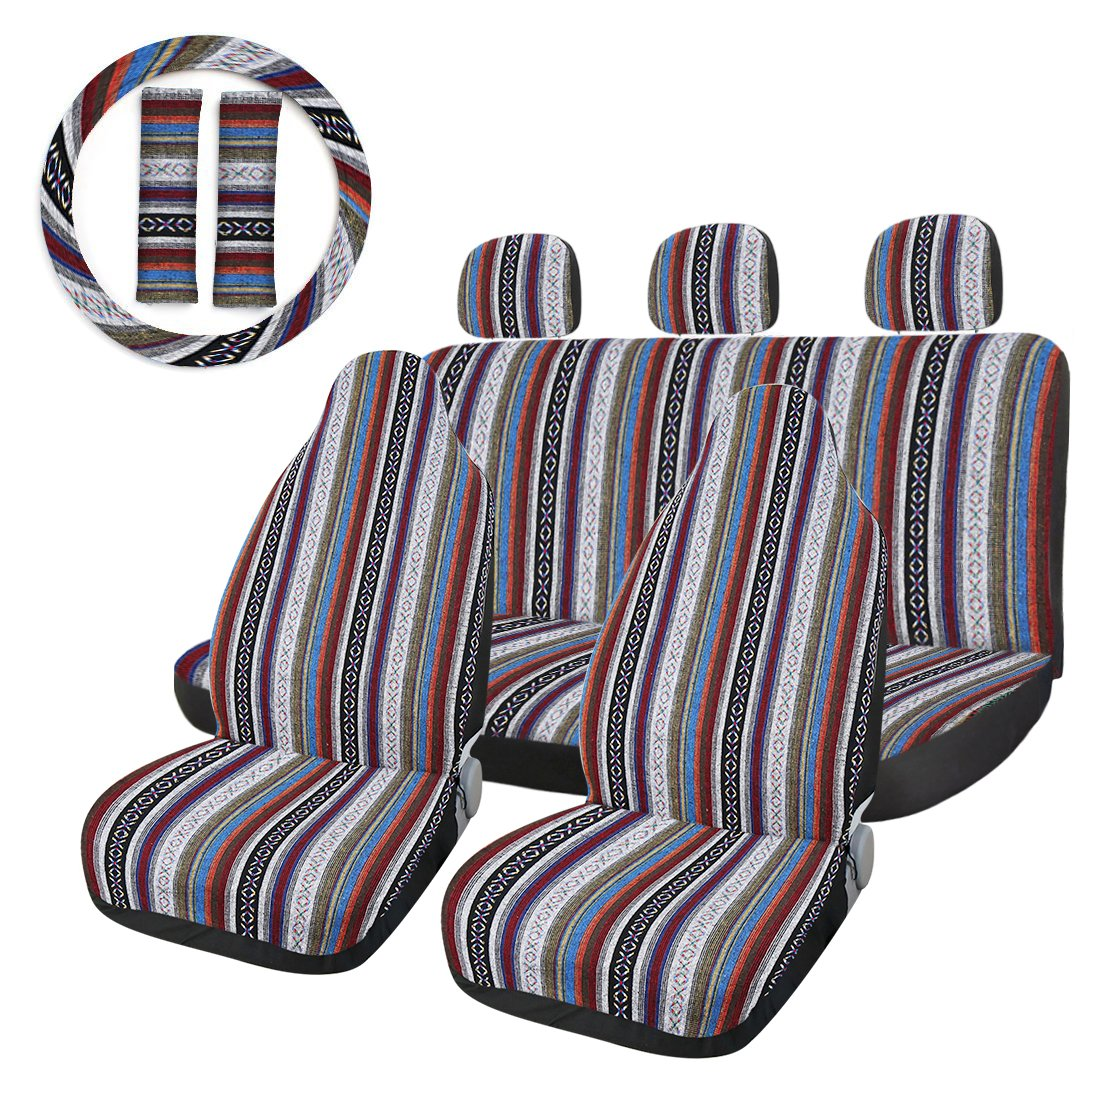 uxcell 10pcs Baja Blanket Ethnic Style Bucket Seat Cover for Auto Automotive